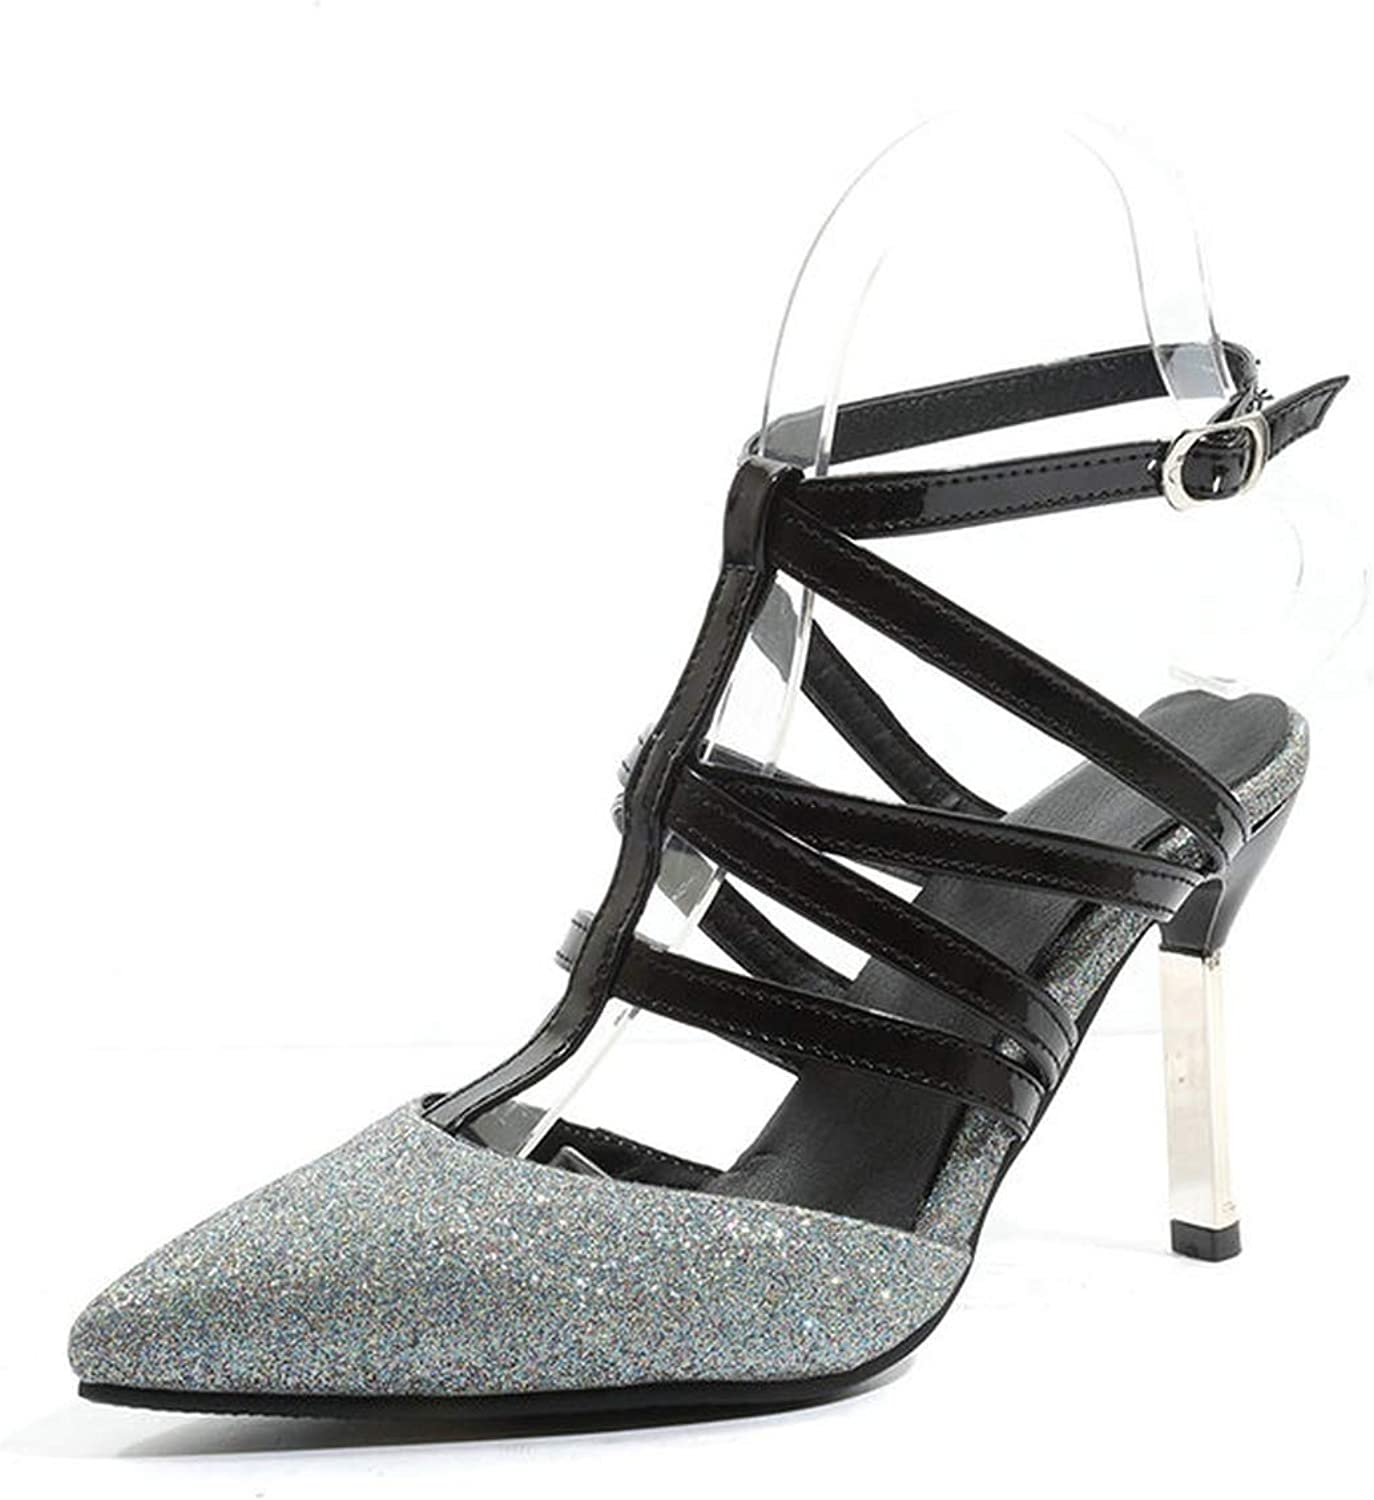 Women Pumps Thin High Heel Pu Leather Pointed Toe Patchwork Slingback Gladiator Sandals